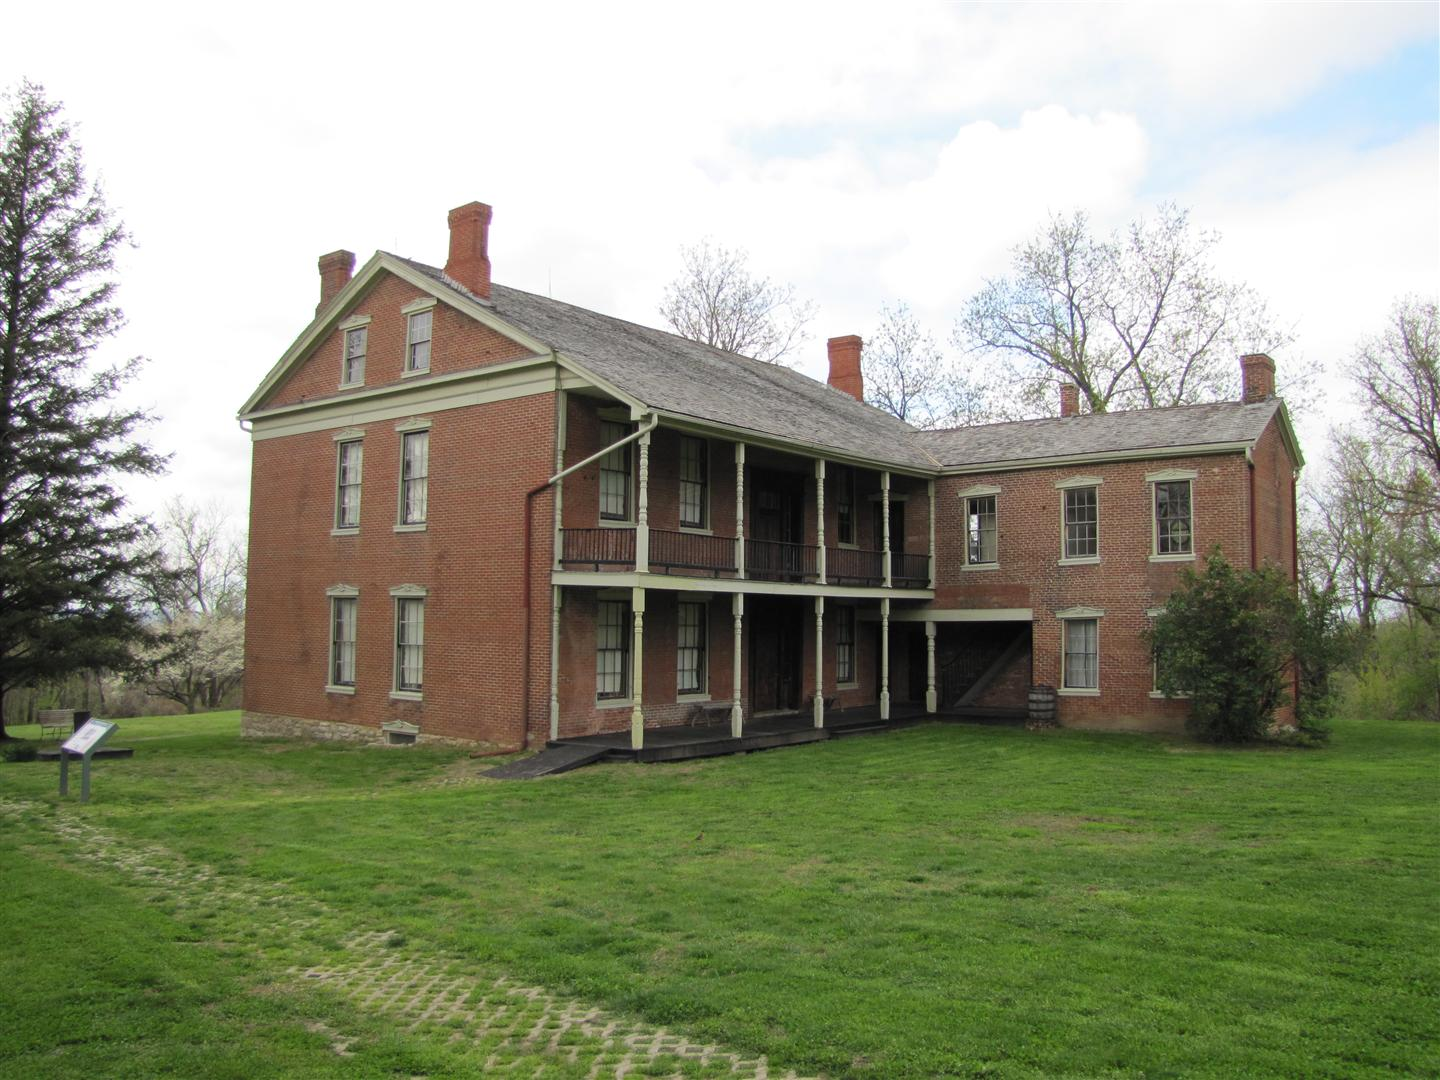 Anderson (MO) United States  city photos : Anderson House Lexington, Missouri Photos Then and Now on ...